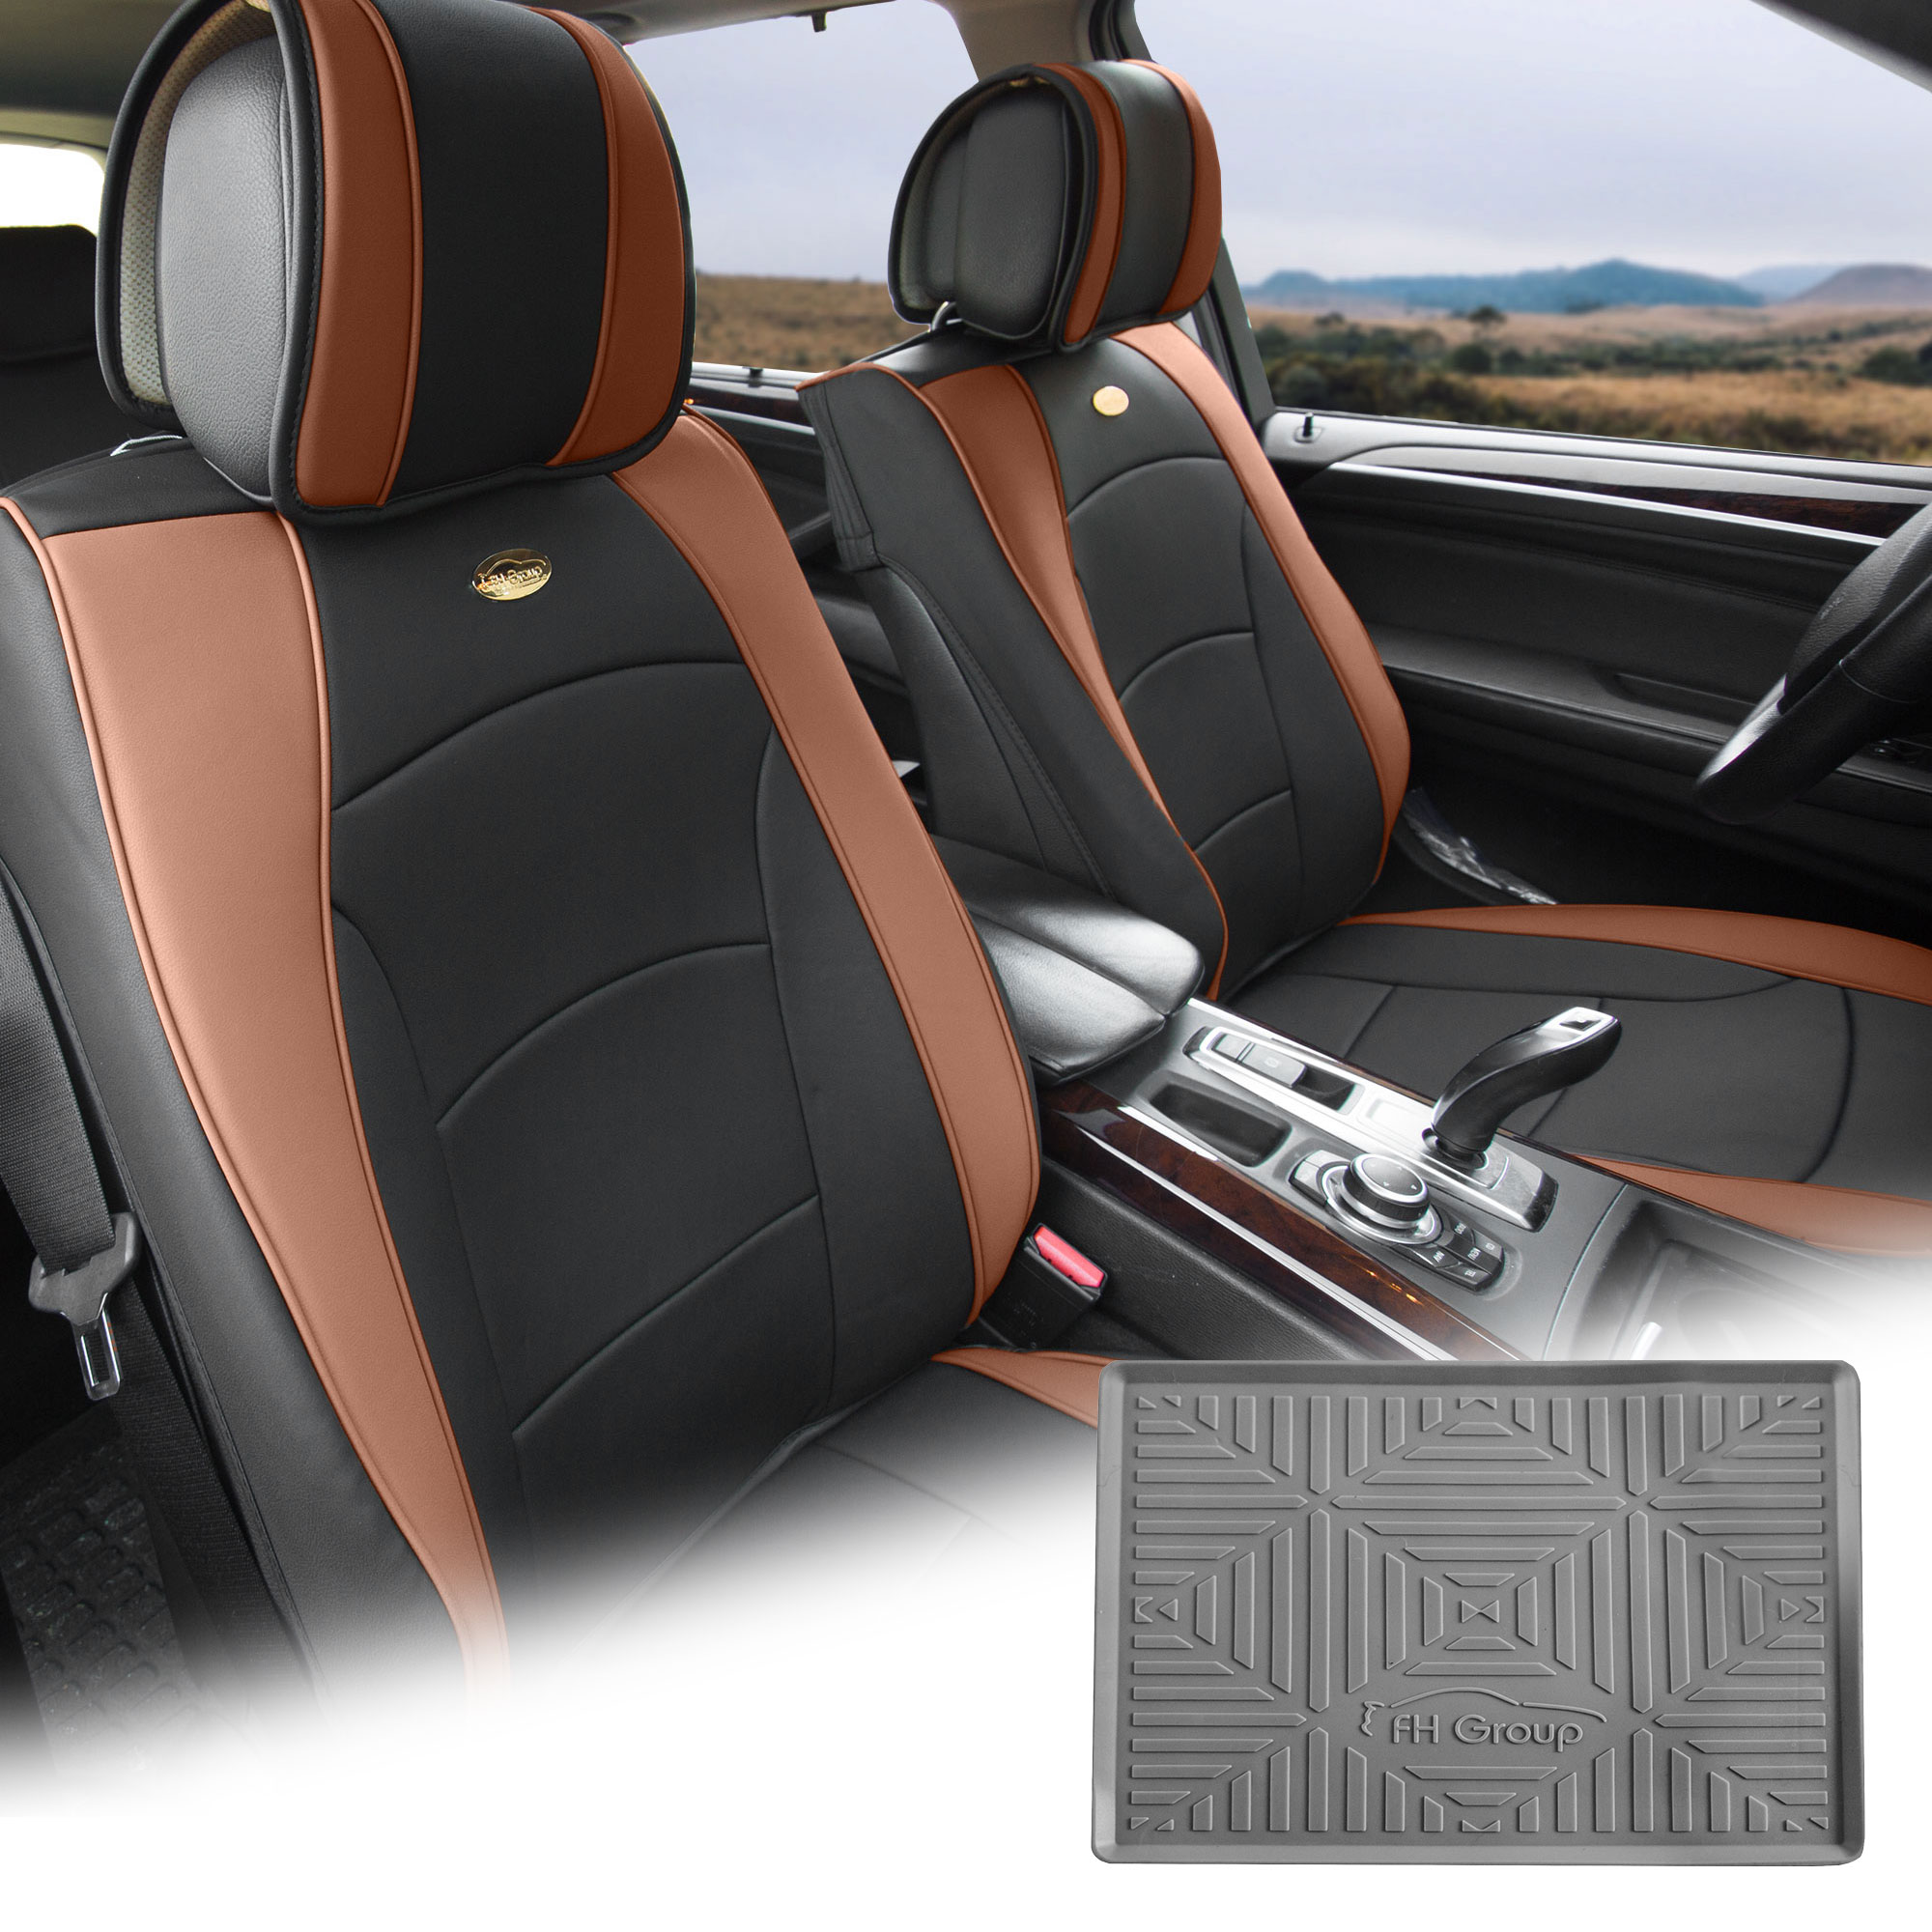 FH Group Brown Black PU Leather Front Bucket Seat Cushion Covers for Auto Car SUV Truck Van with Gray Dash Mat Combo